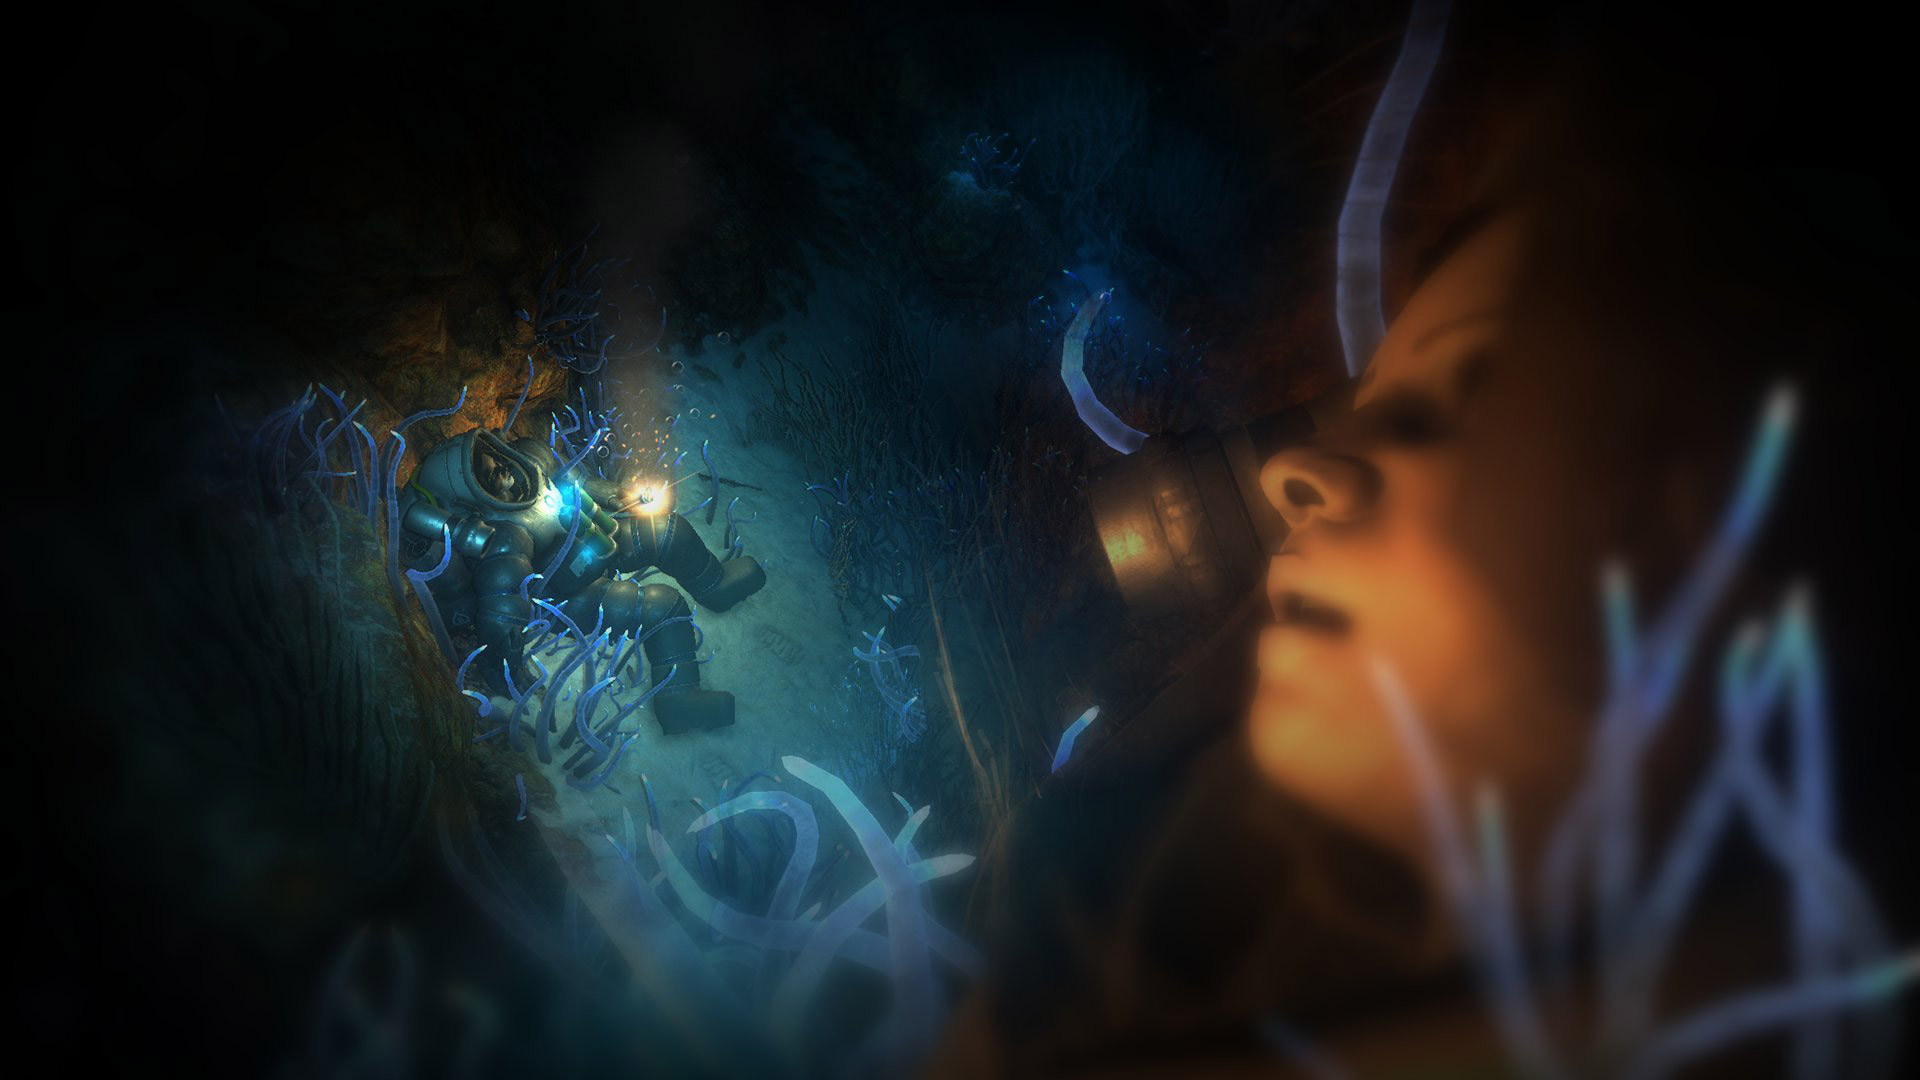 Narcosis Wallpaper in 1920x1080